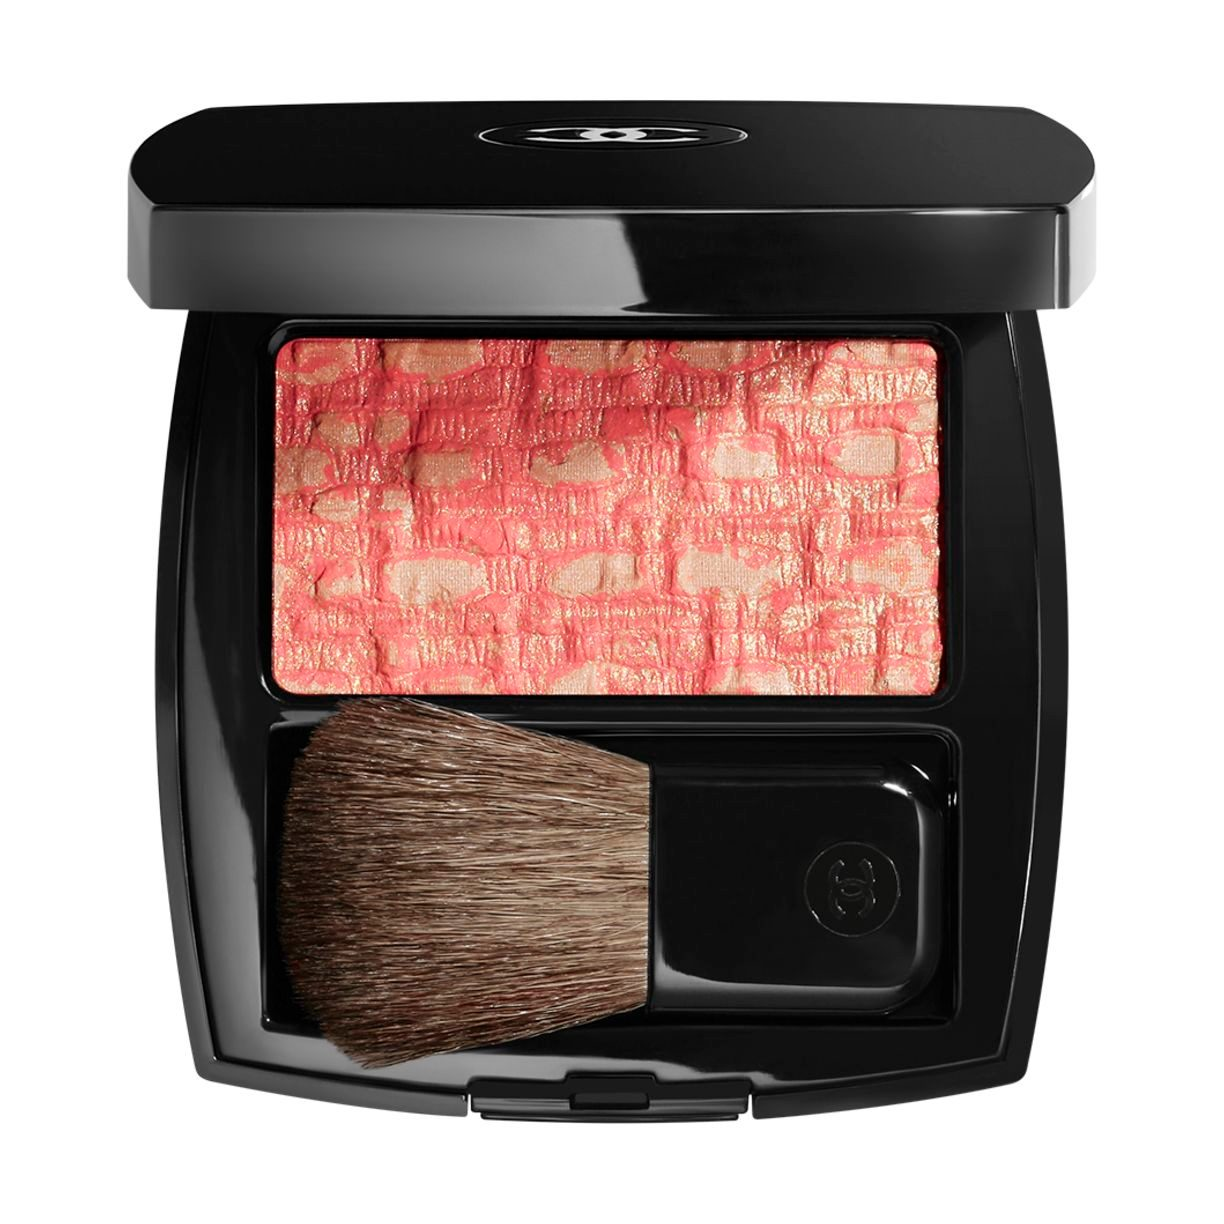 LES TISSAGES DE CHANEL BLUSH DUO IN POLVERE SETOSA